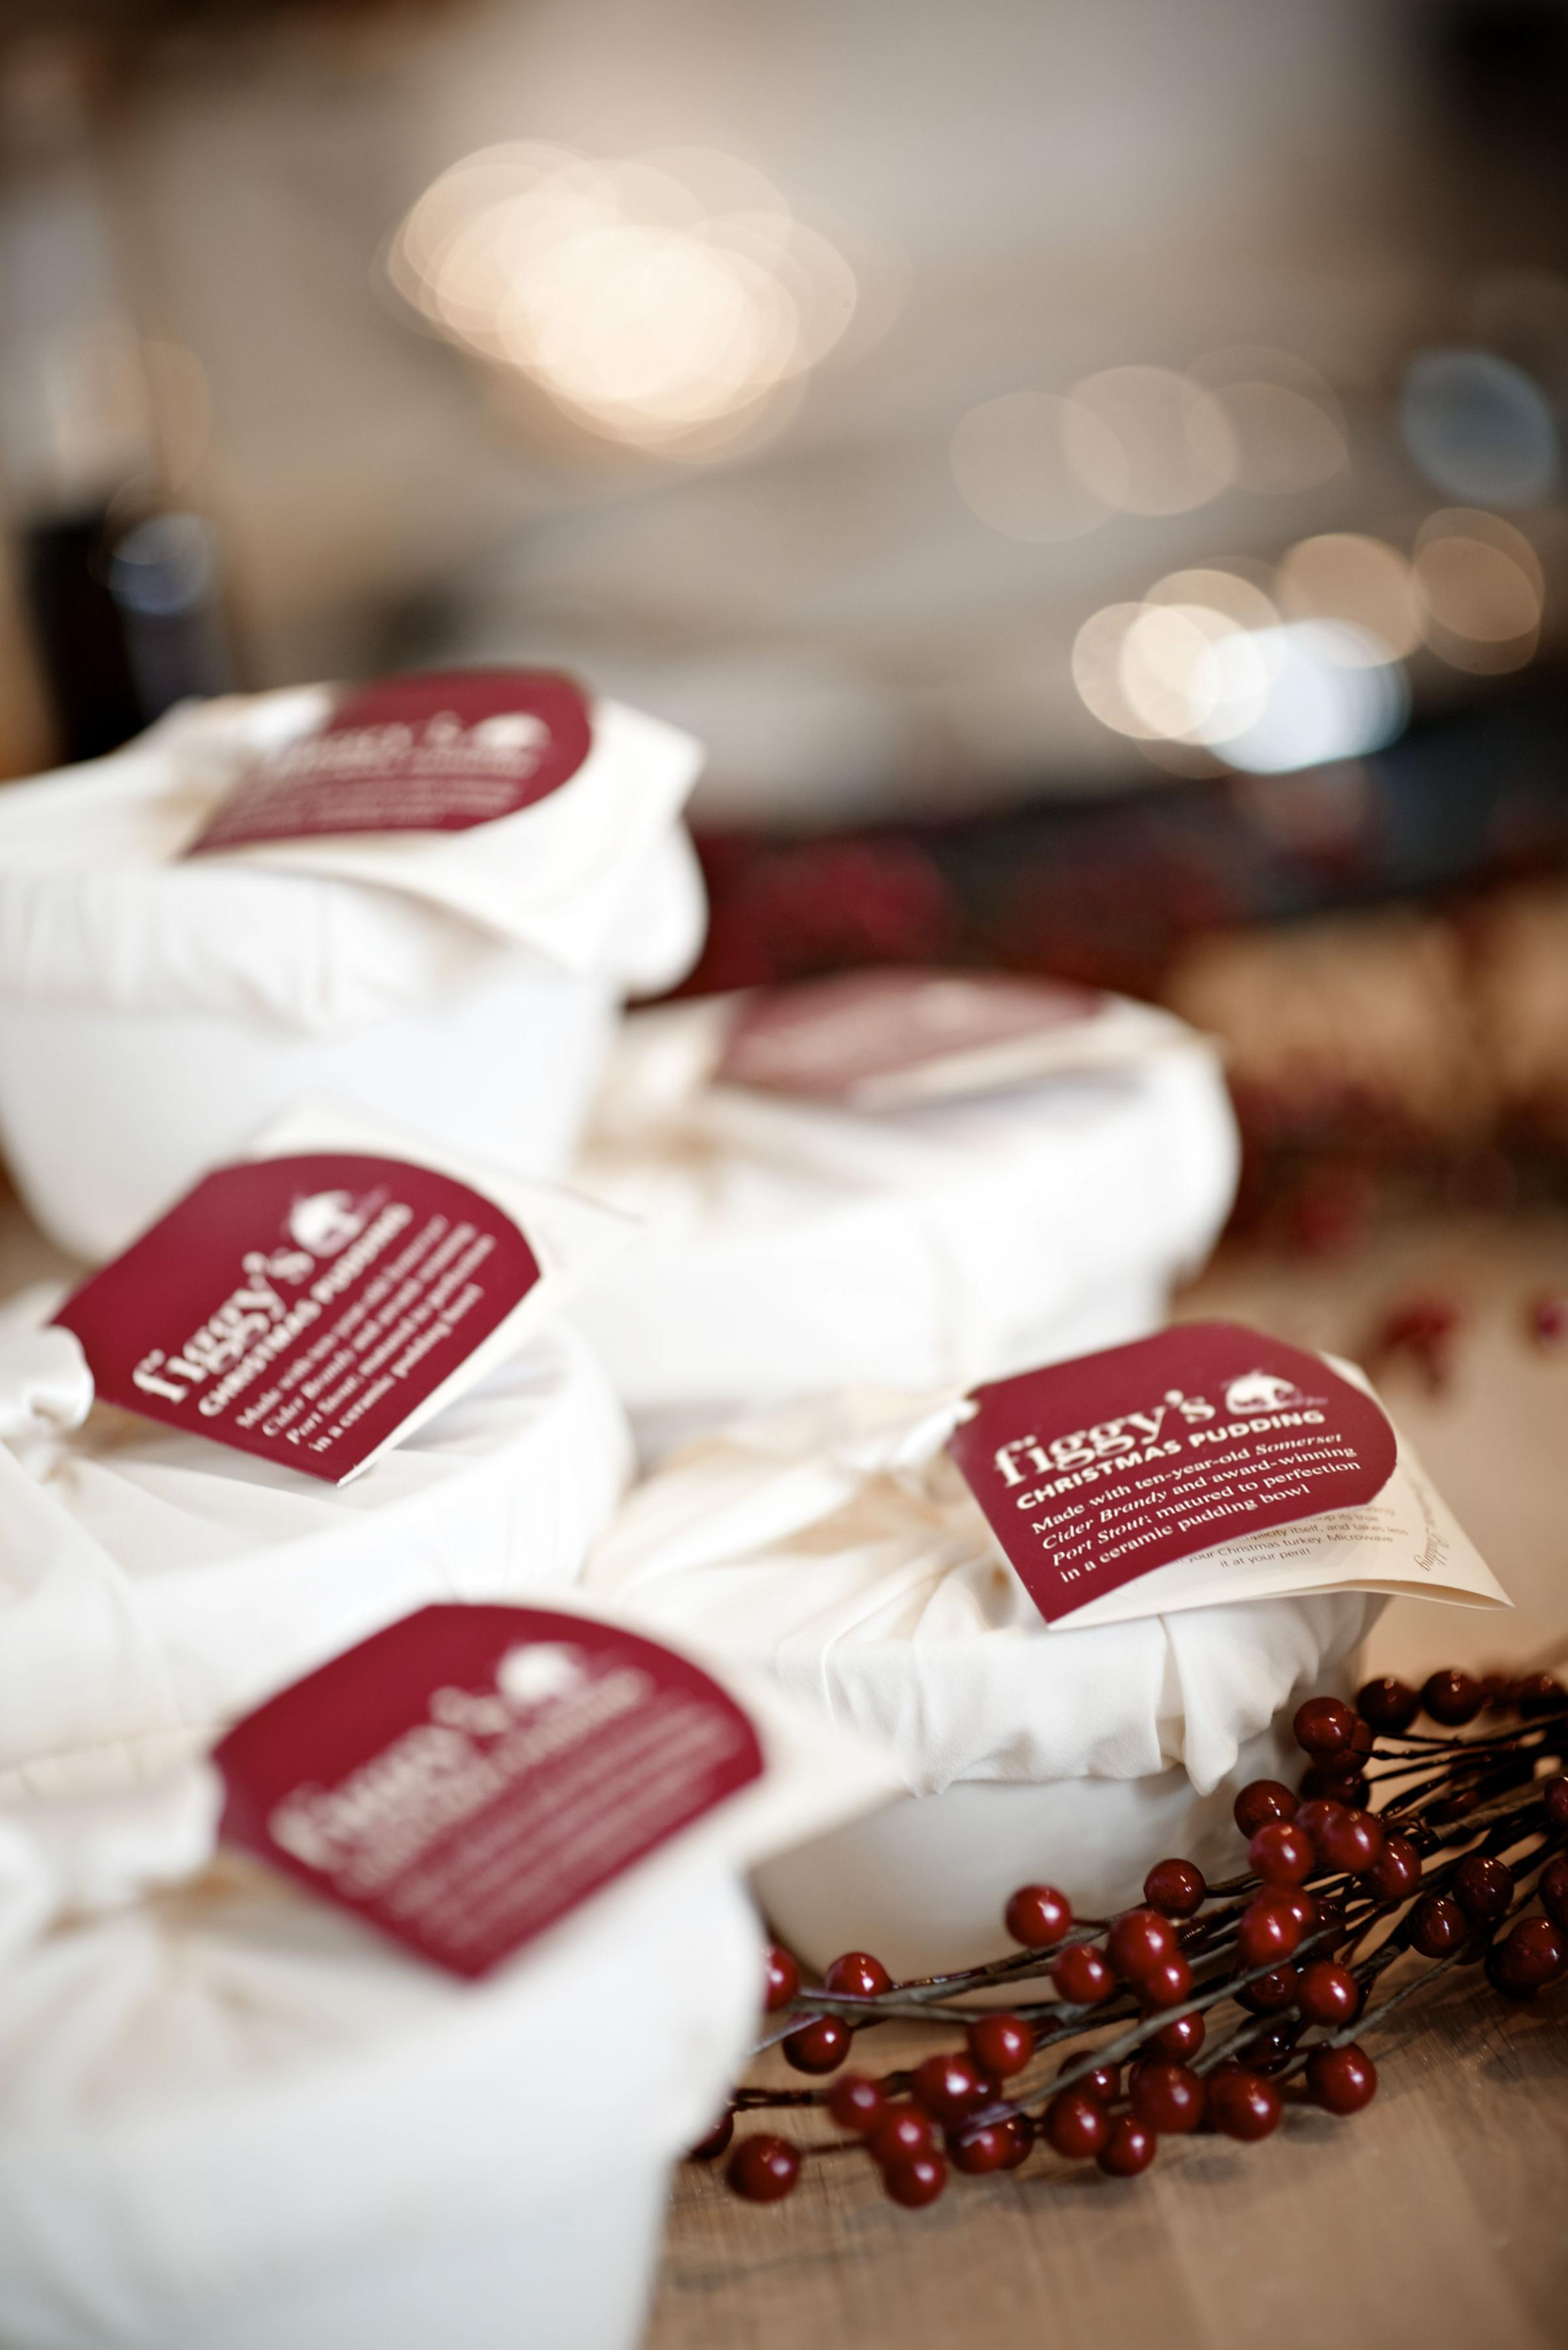 Enjoy handmade luxury Christmas puddings from Figgy's which are Devon quality